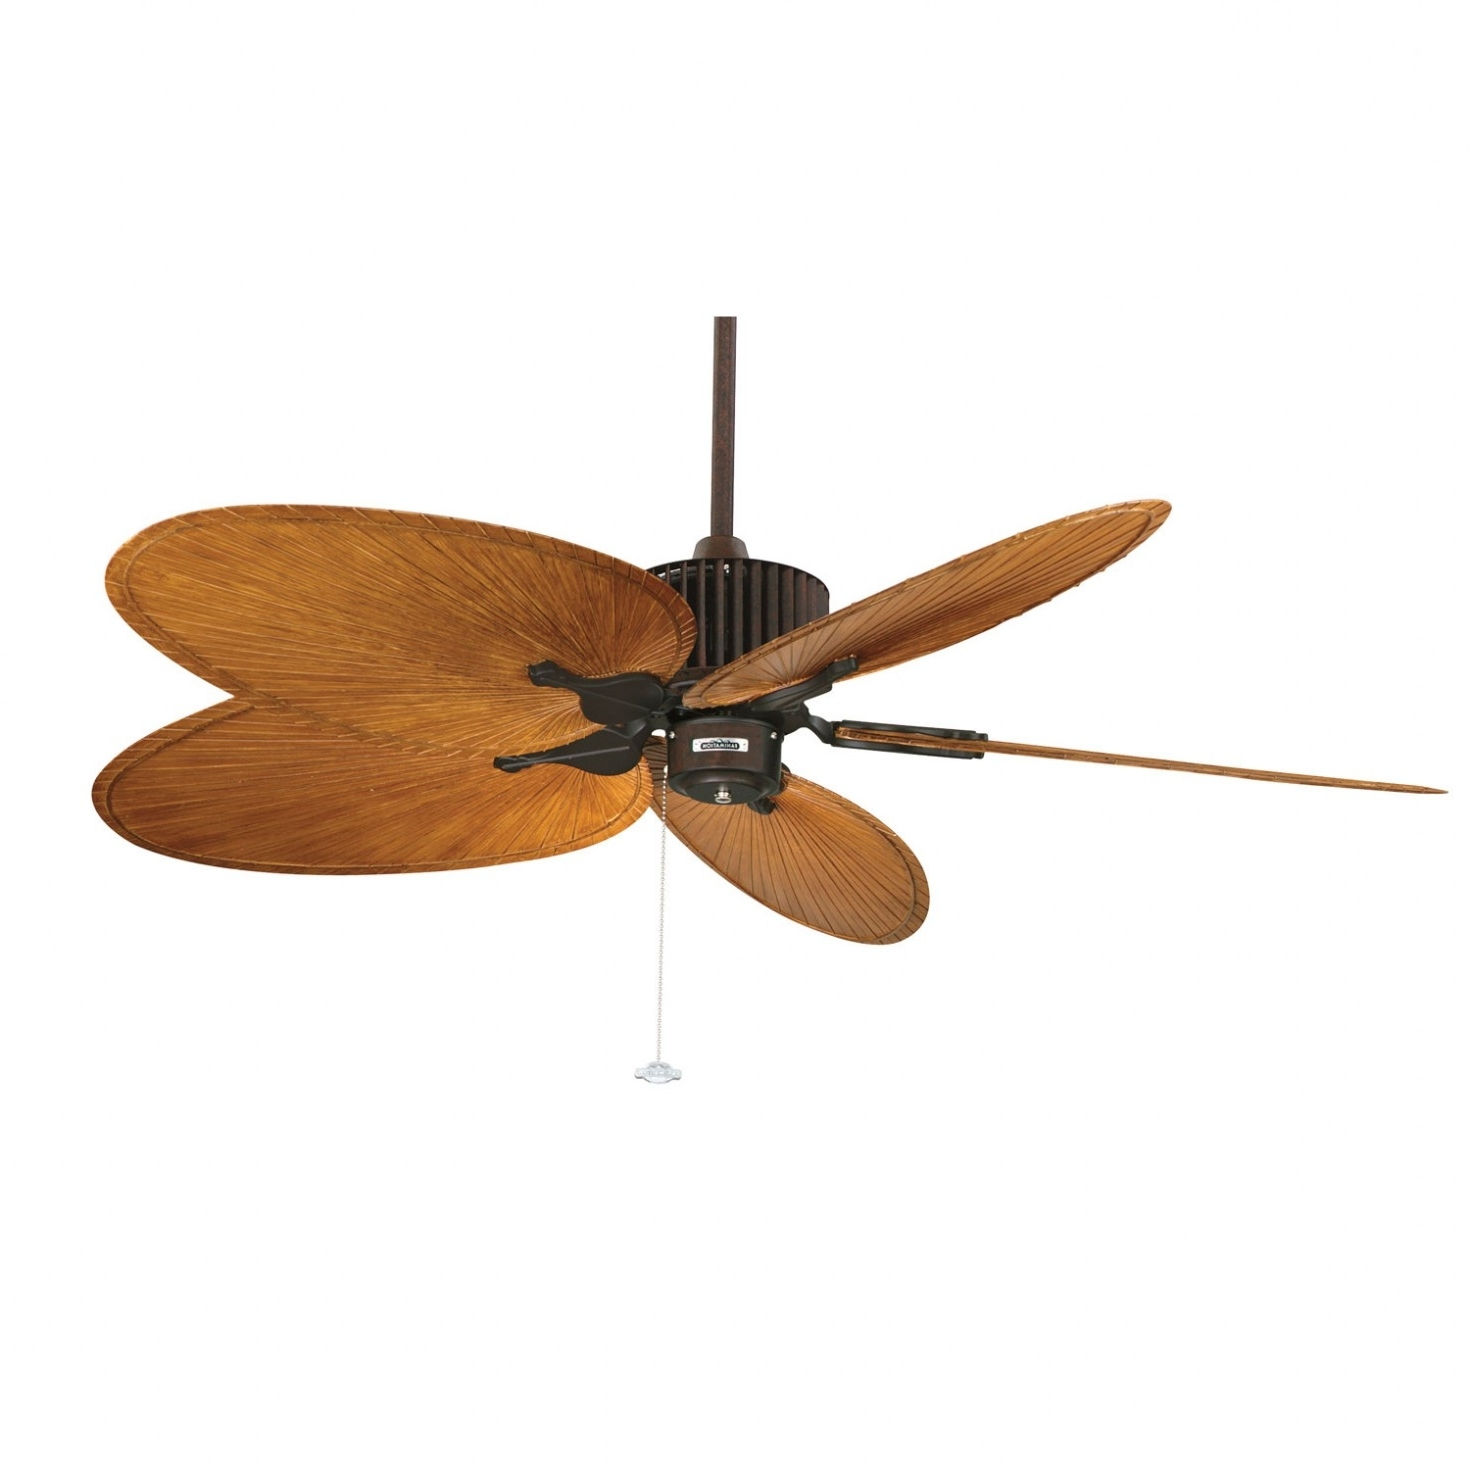 Outdoor Ceiling Fans With Palm Blades Regarding Trendy Palm Leaf Ceiling Fan — Foothillfolk Designs (View 15 of 20)